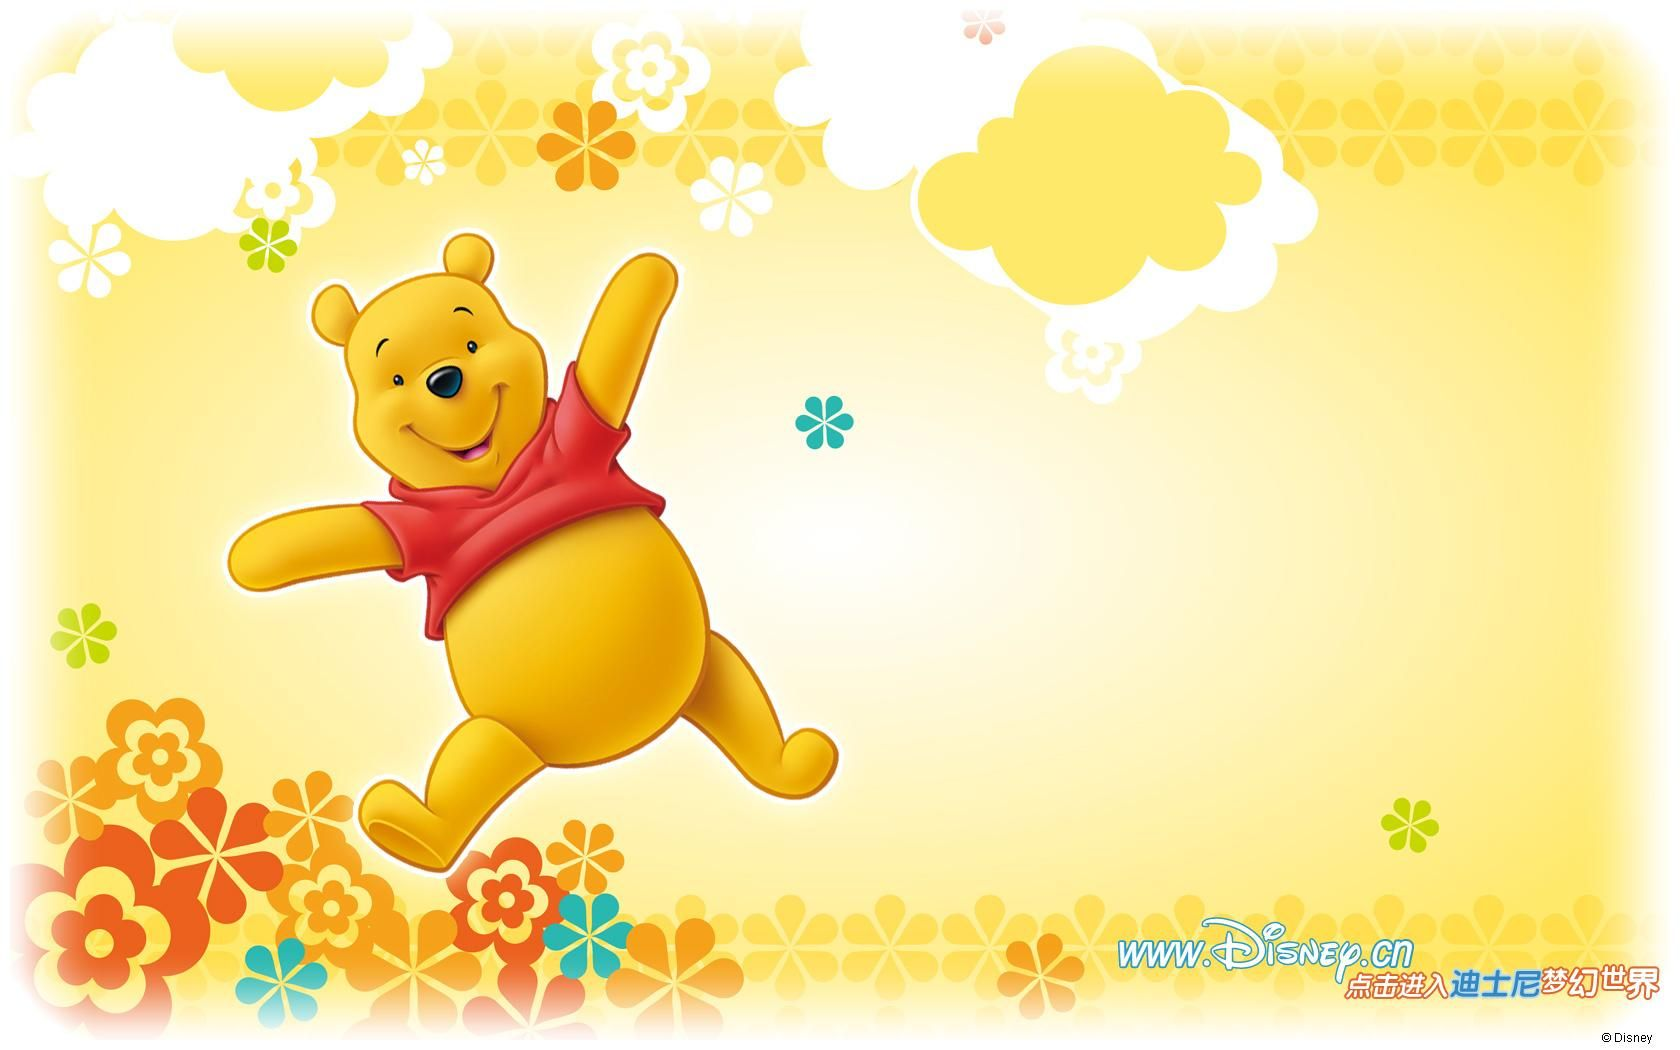 Winnie pooh wallpaper free wallpapers pinterest wallpaper winnie the pooh hd wallpapers backgrounds wallpaper winnie the pooh wallpapers wallpapers voltagebd Gallery